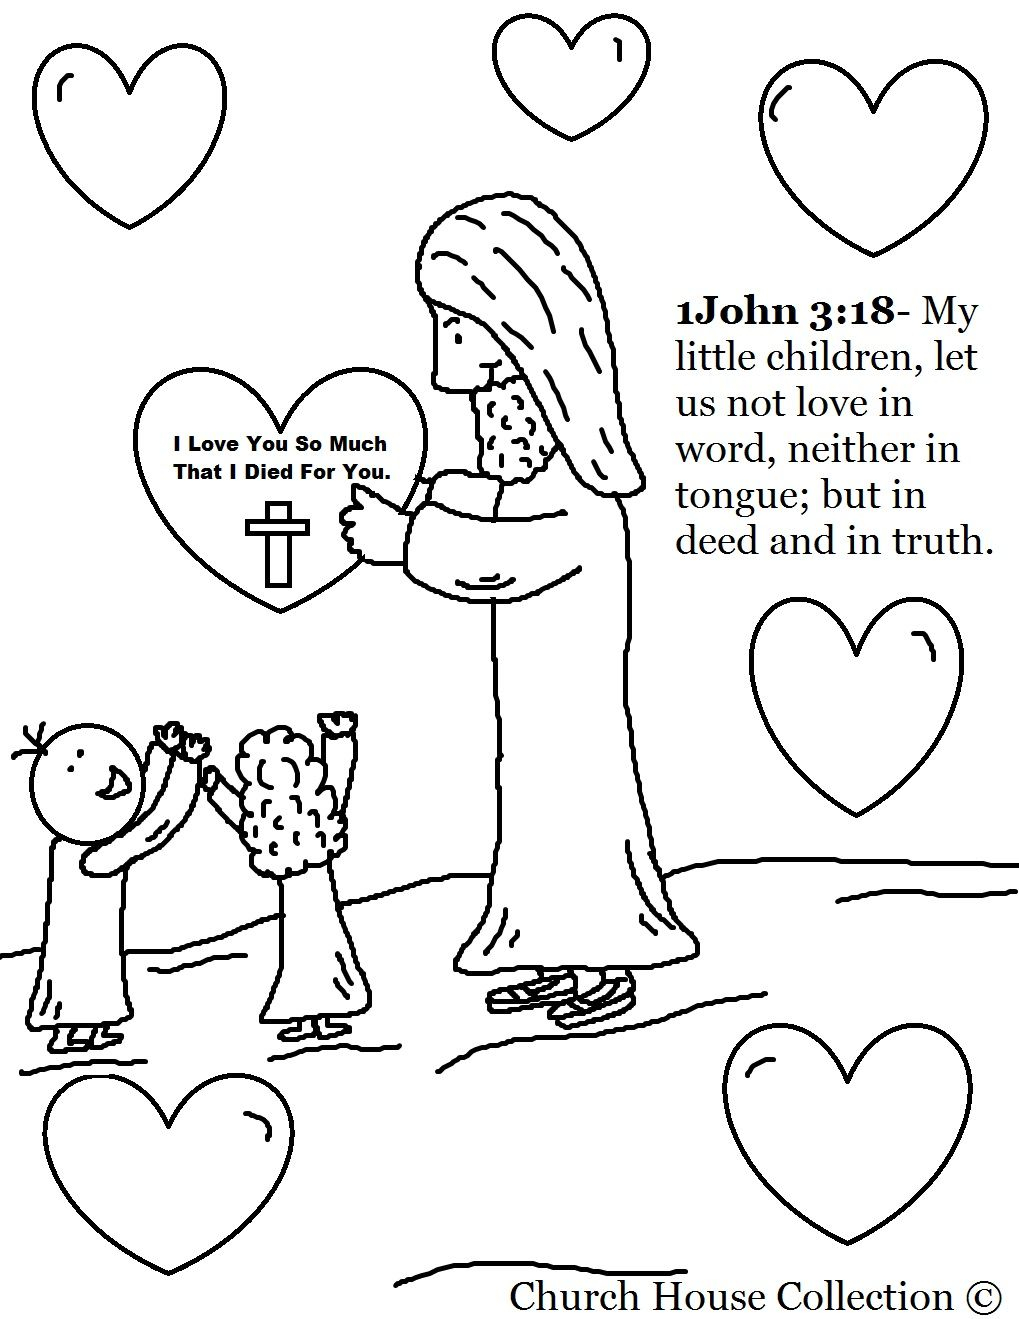 Coloring Pages for Sunday School Lessons Printable 7p - Save it to your computer